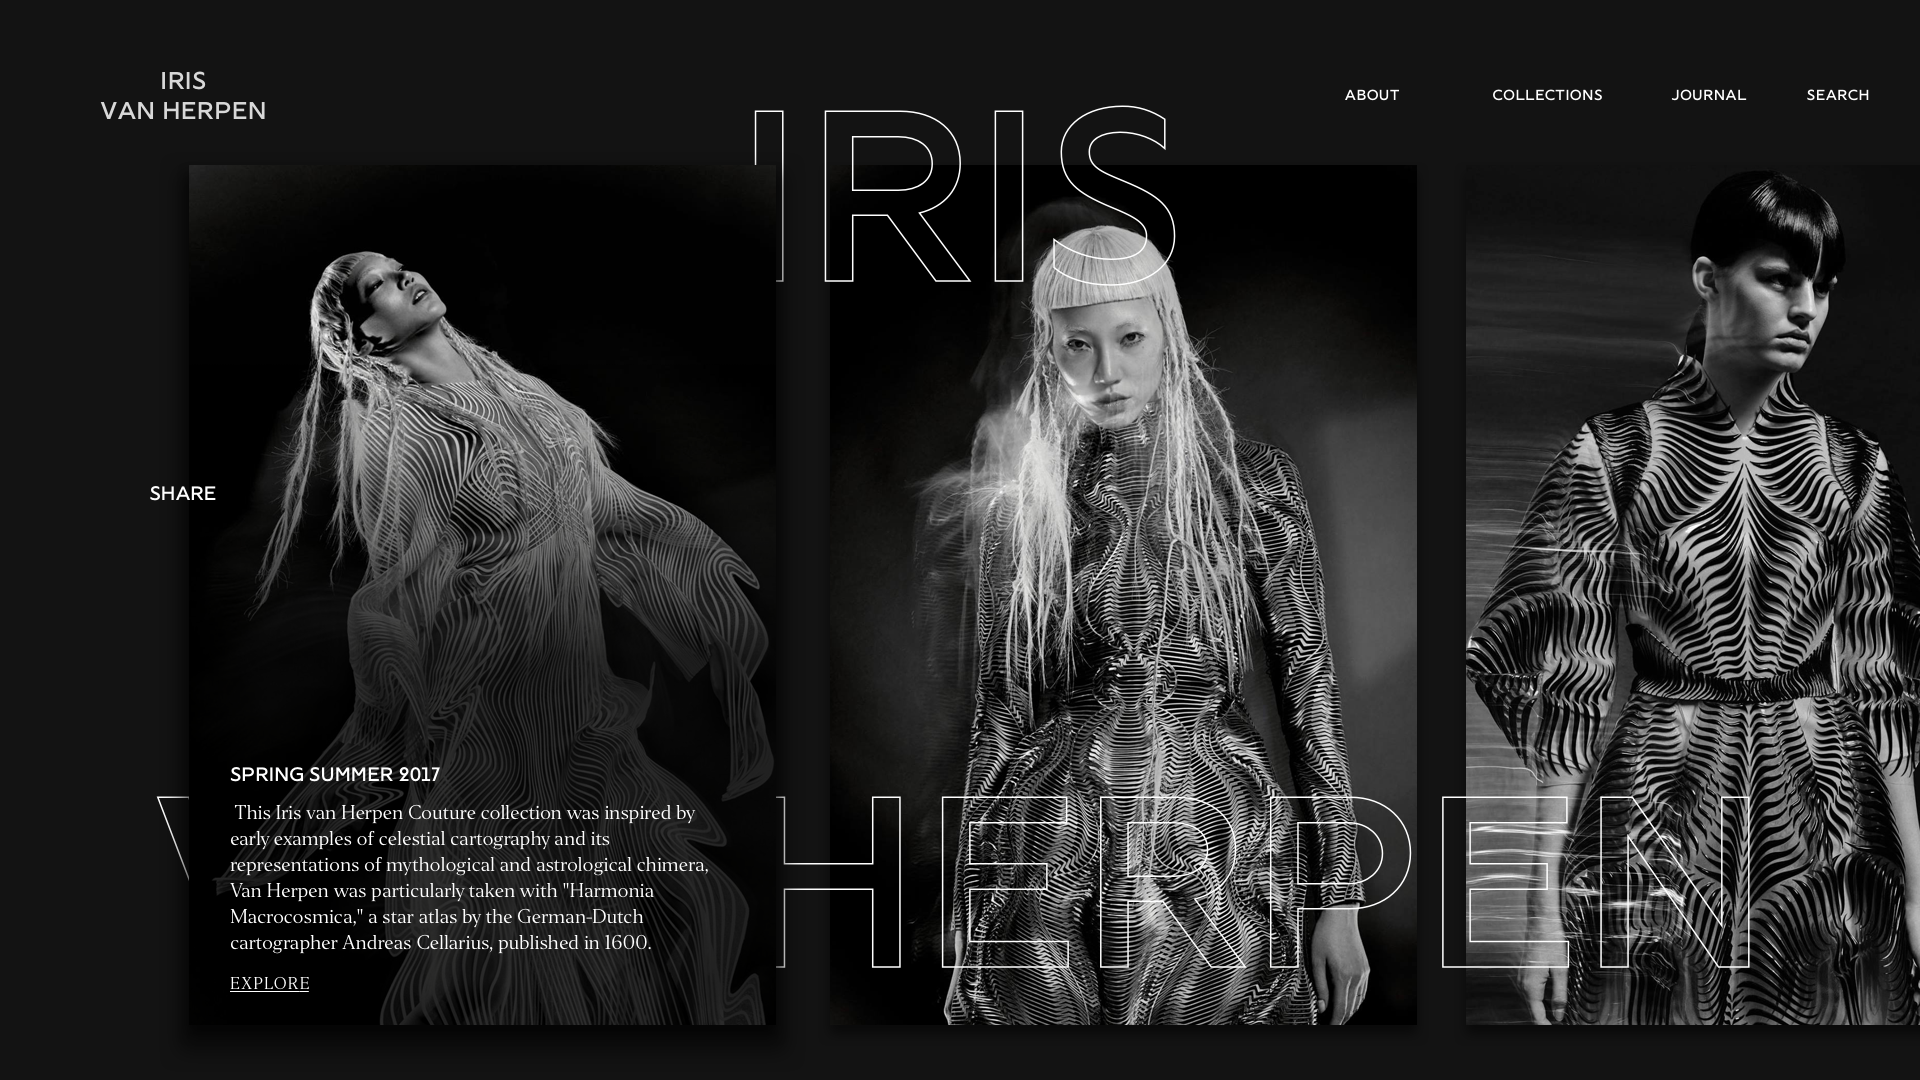 ESCR_Studies_Digital_Nº3_IrisVanHerpen_v1.1C